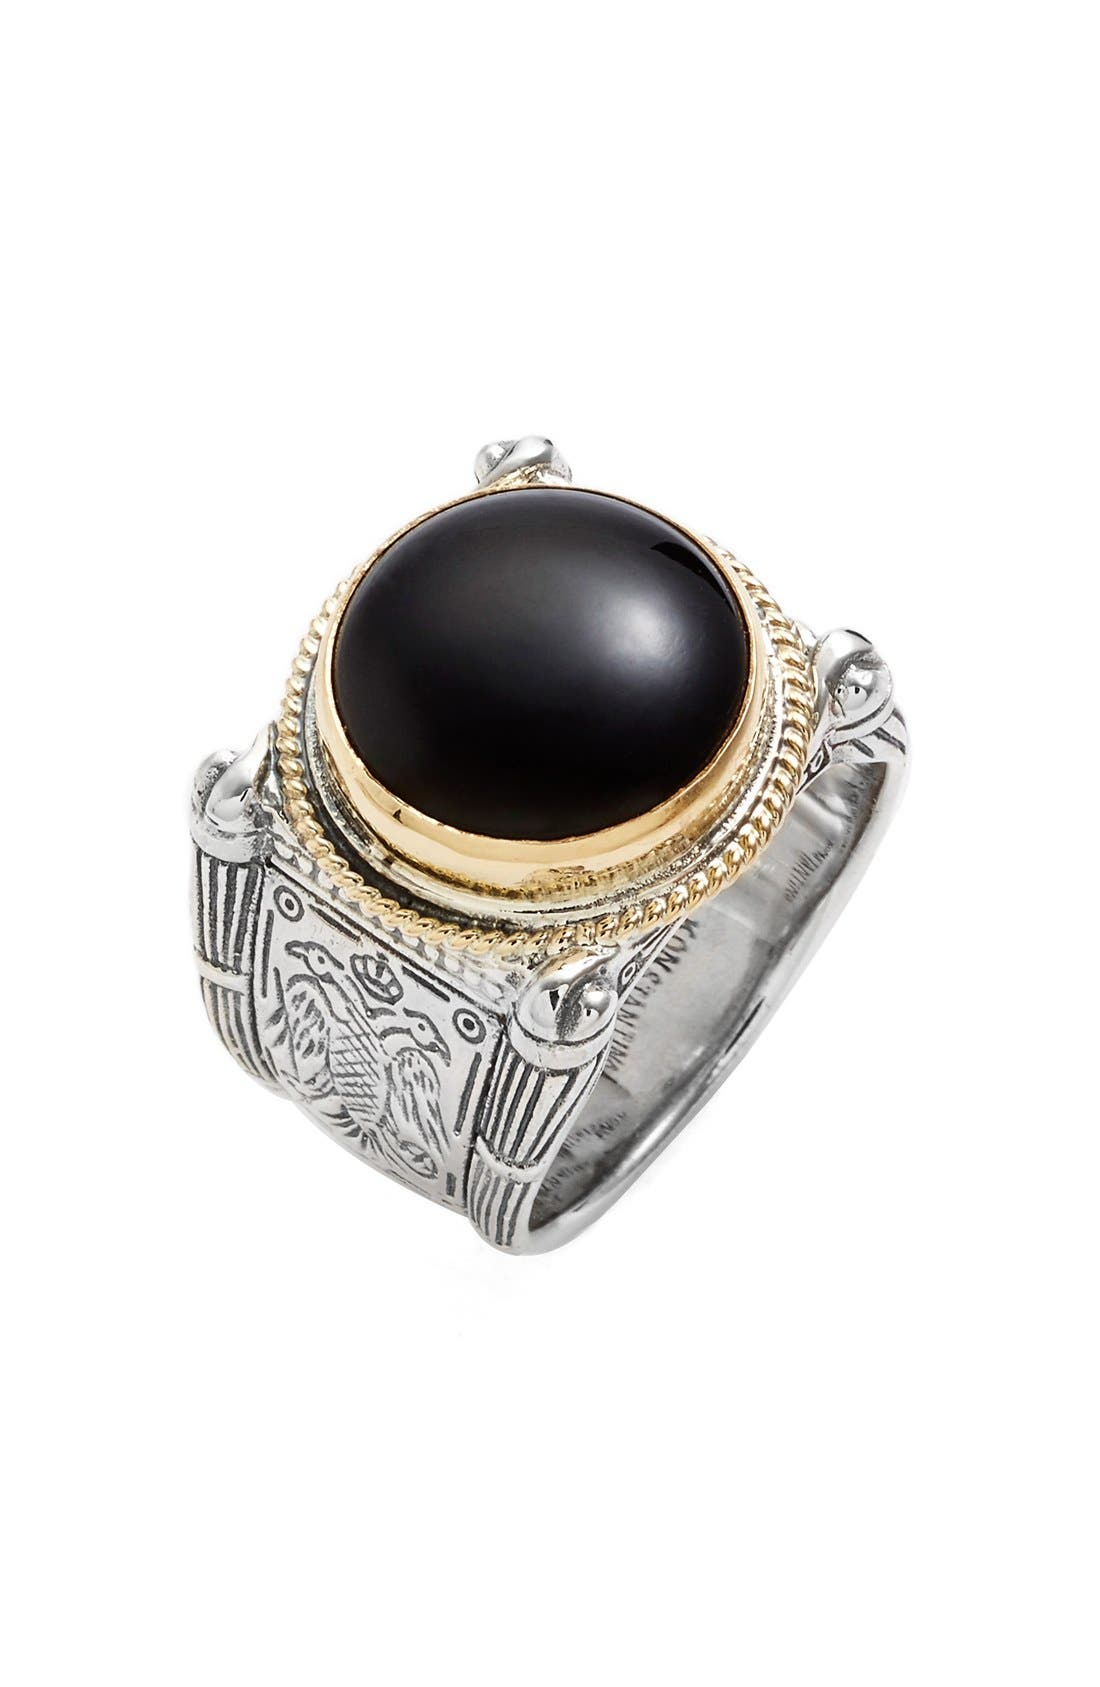 'Minos' Etched Black Onyx Ring,                             Main thumbnail 1, color,                             Silver/ Gold/ Black Onyx